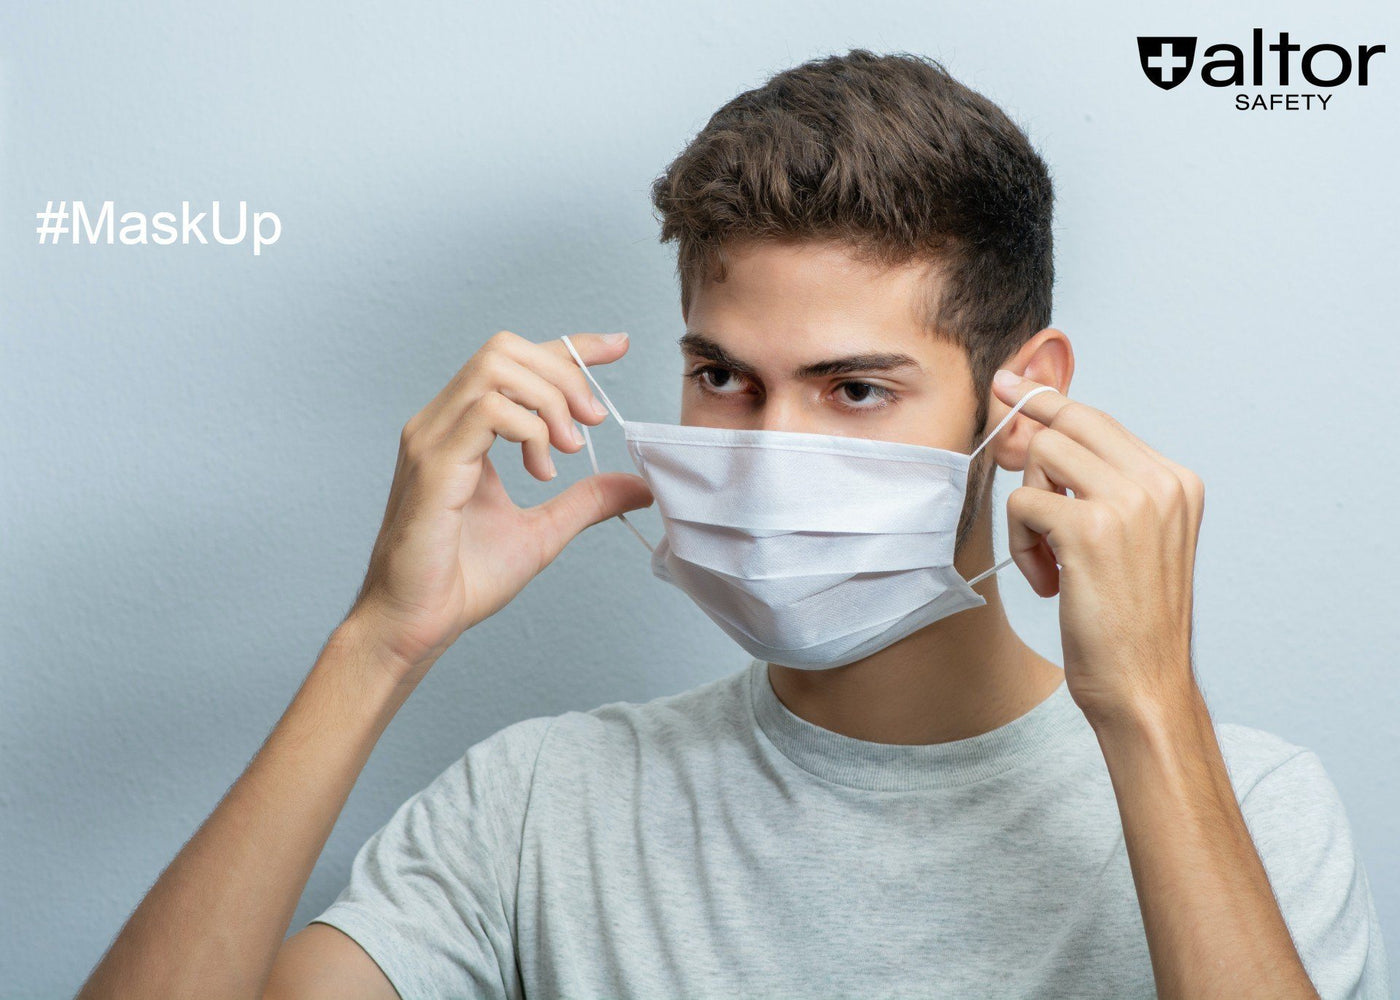 Mask Up America mandate has cut COVID-19 infections